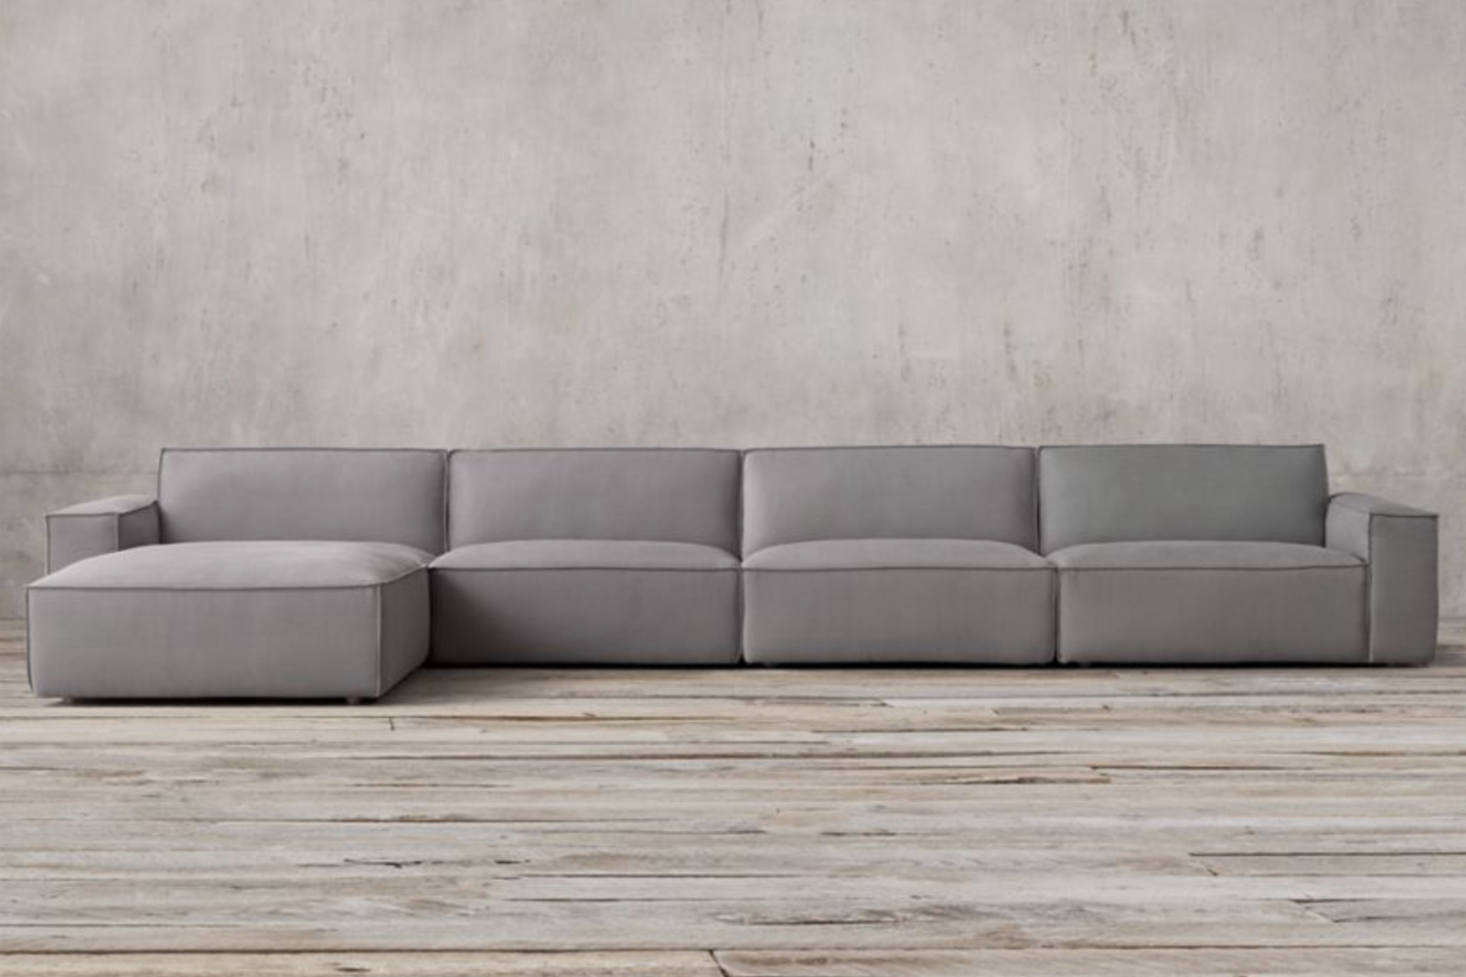 Even Restoration Hardware Jumped On The Clunky Modular Sofa Bandwagon With Their Como Sectional